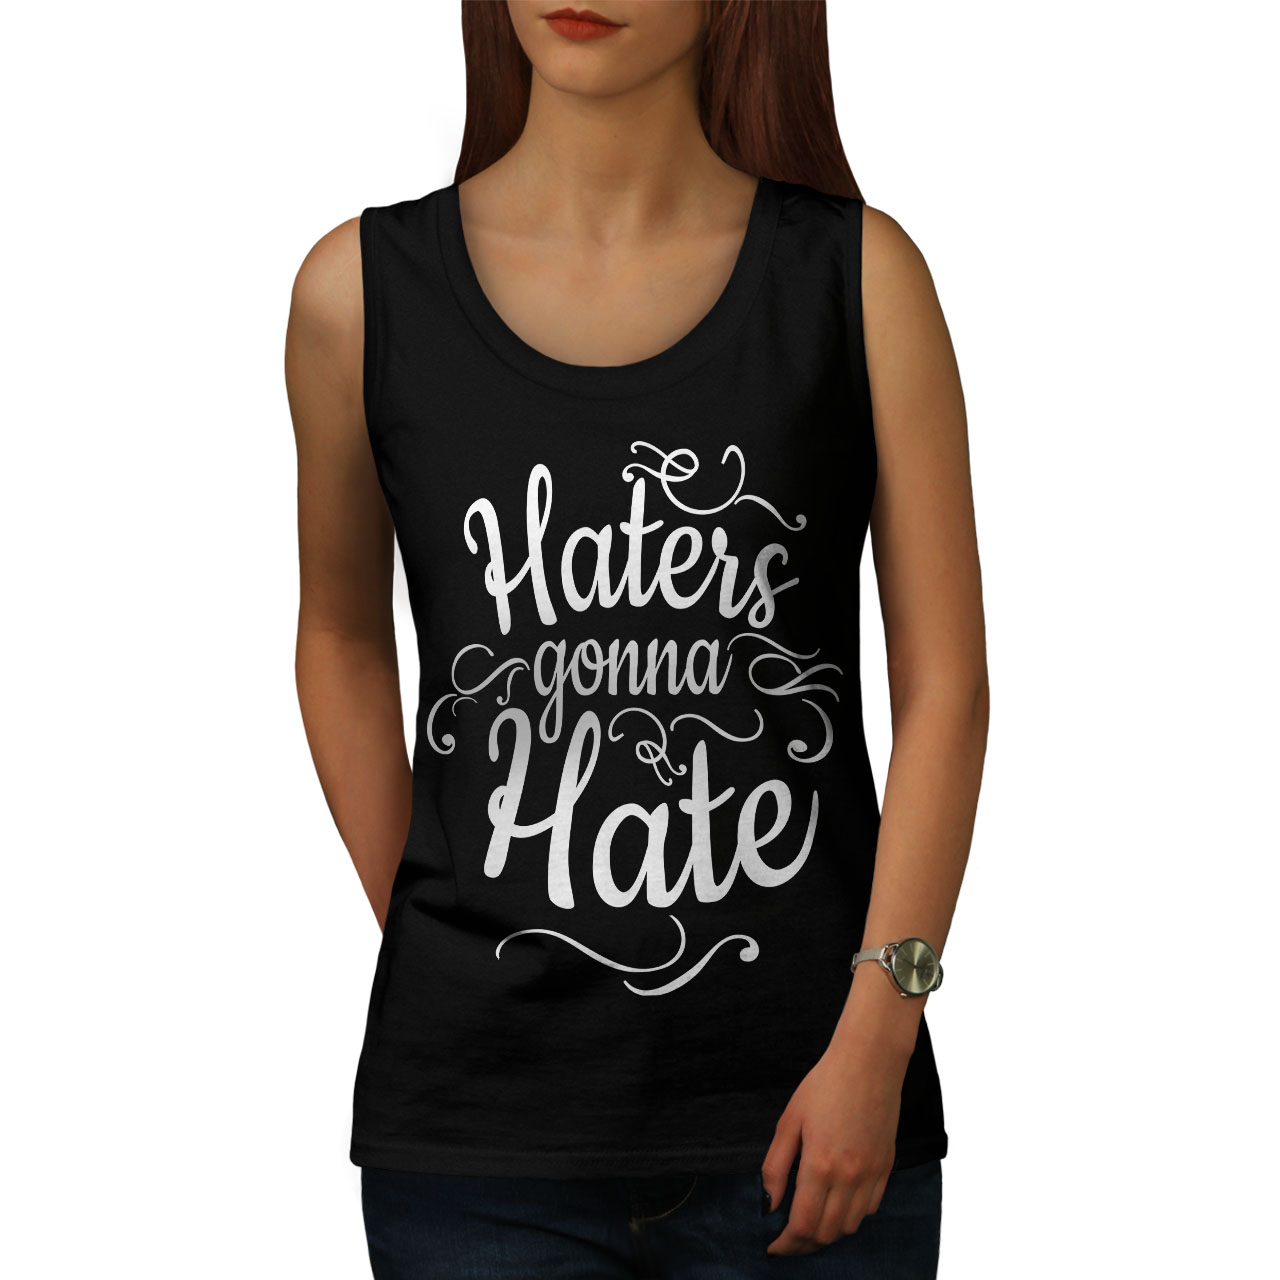 Wellcoda-Hasser-Gonna-Hate-Damen-Tank-Top-lustige-Athletic-Sportshirt Indexbild 6